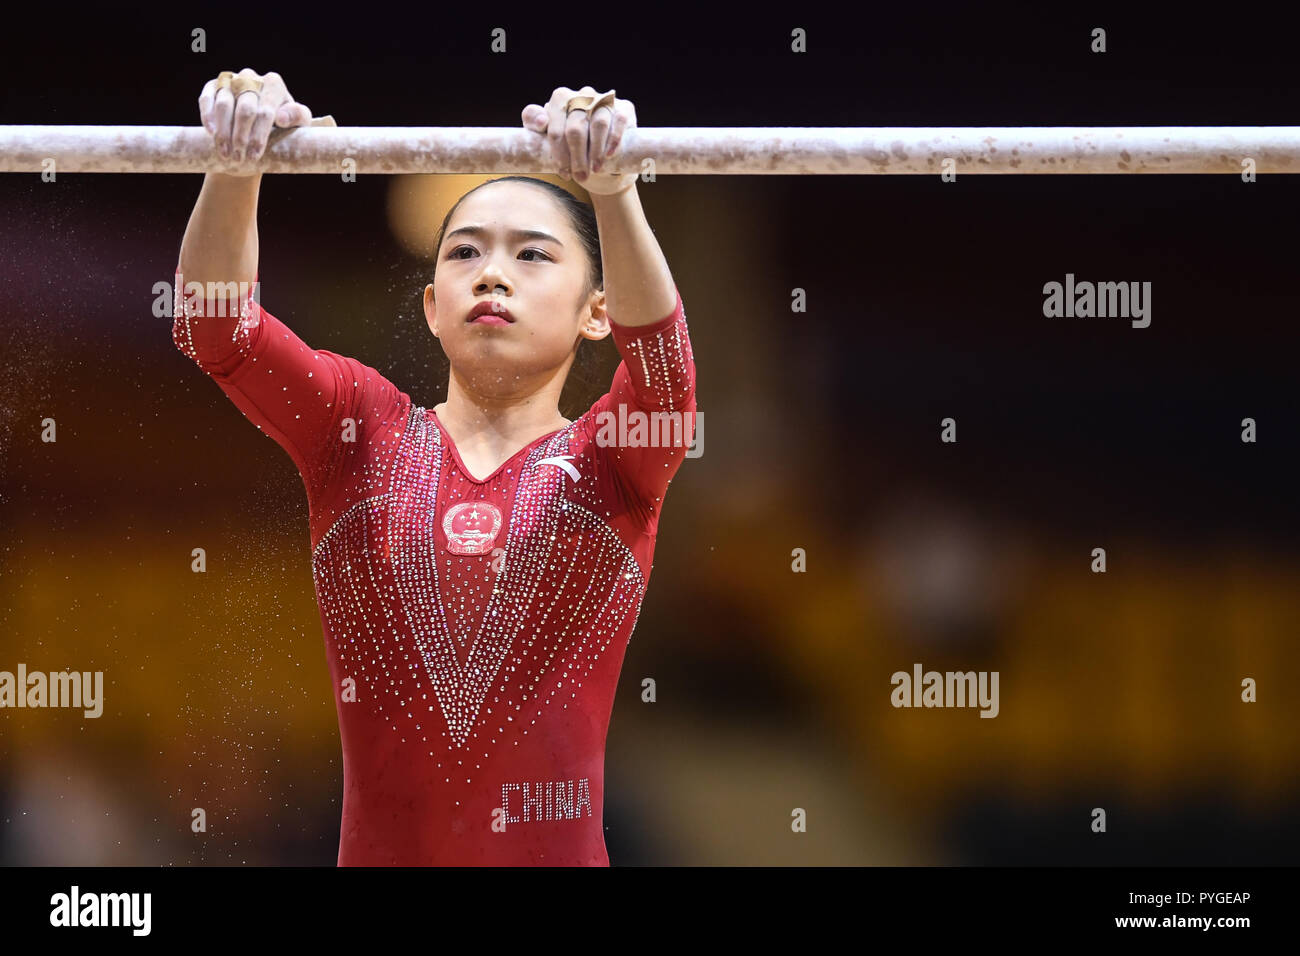 Doha, Qatar. 28th Oct, 2018. LIU TINGTING chalks up the uneven bars during the second day of preliminary competition held at the Aspire Dome in Doha, Qatar. Credit: Amy Sanderson/ZUMA Wire/Alamy Live News Stock Photo